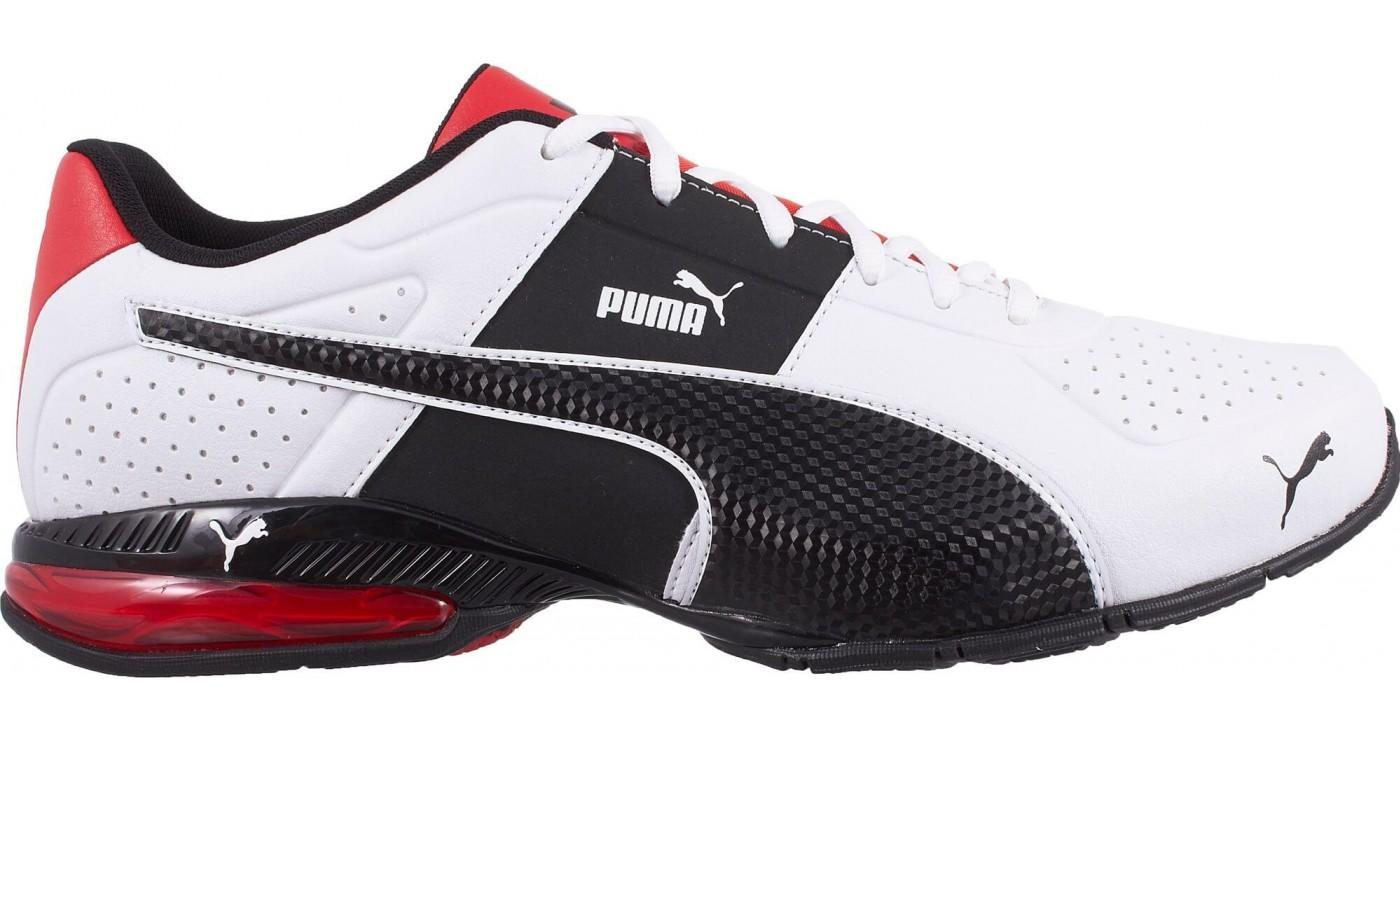 The Puma Cell Surin 2 features 10CELL cushioning